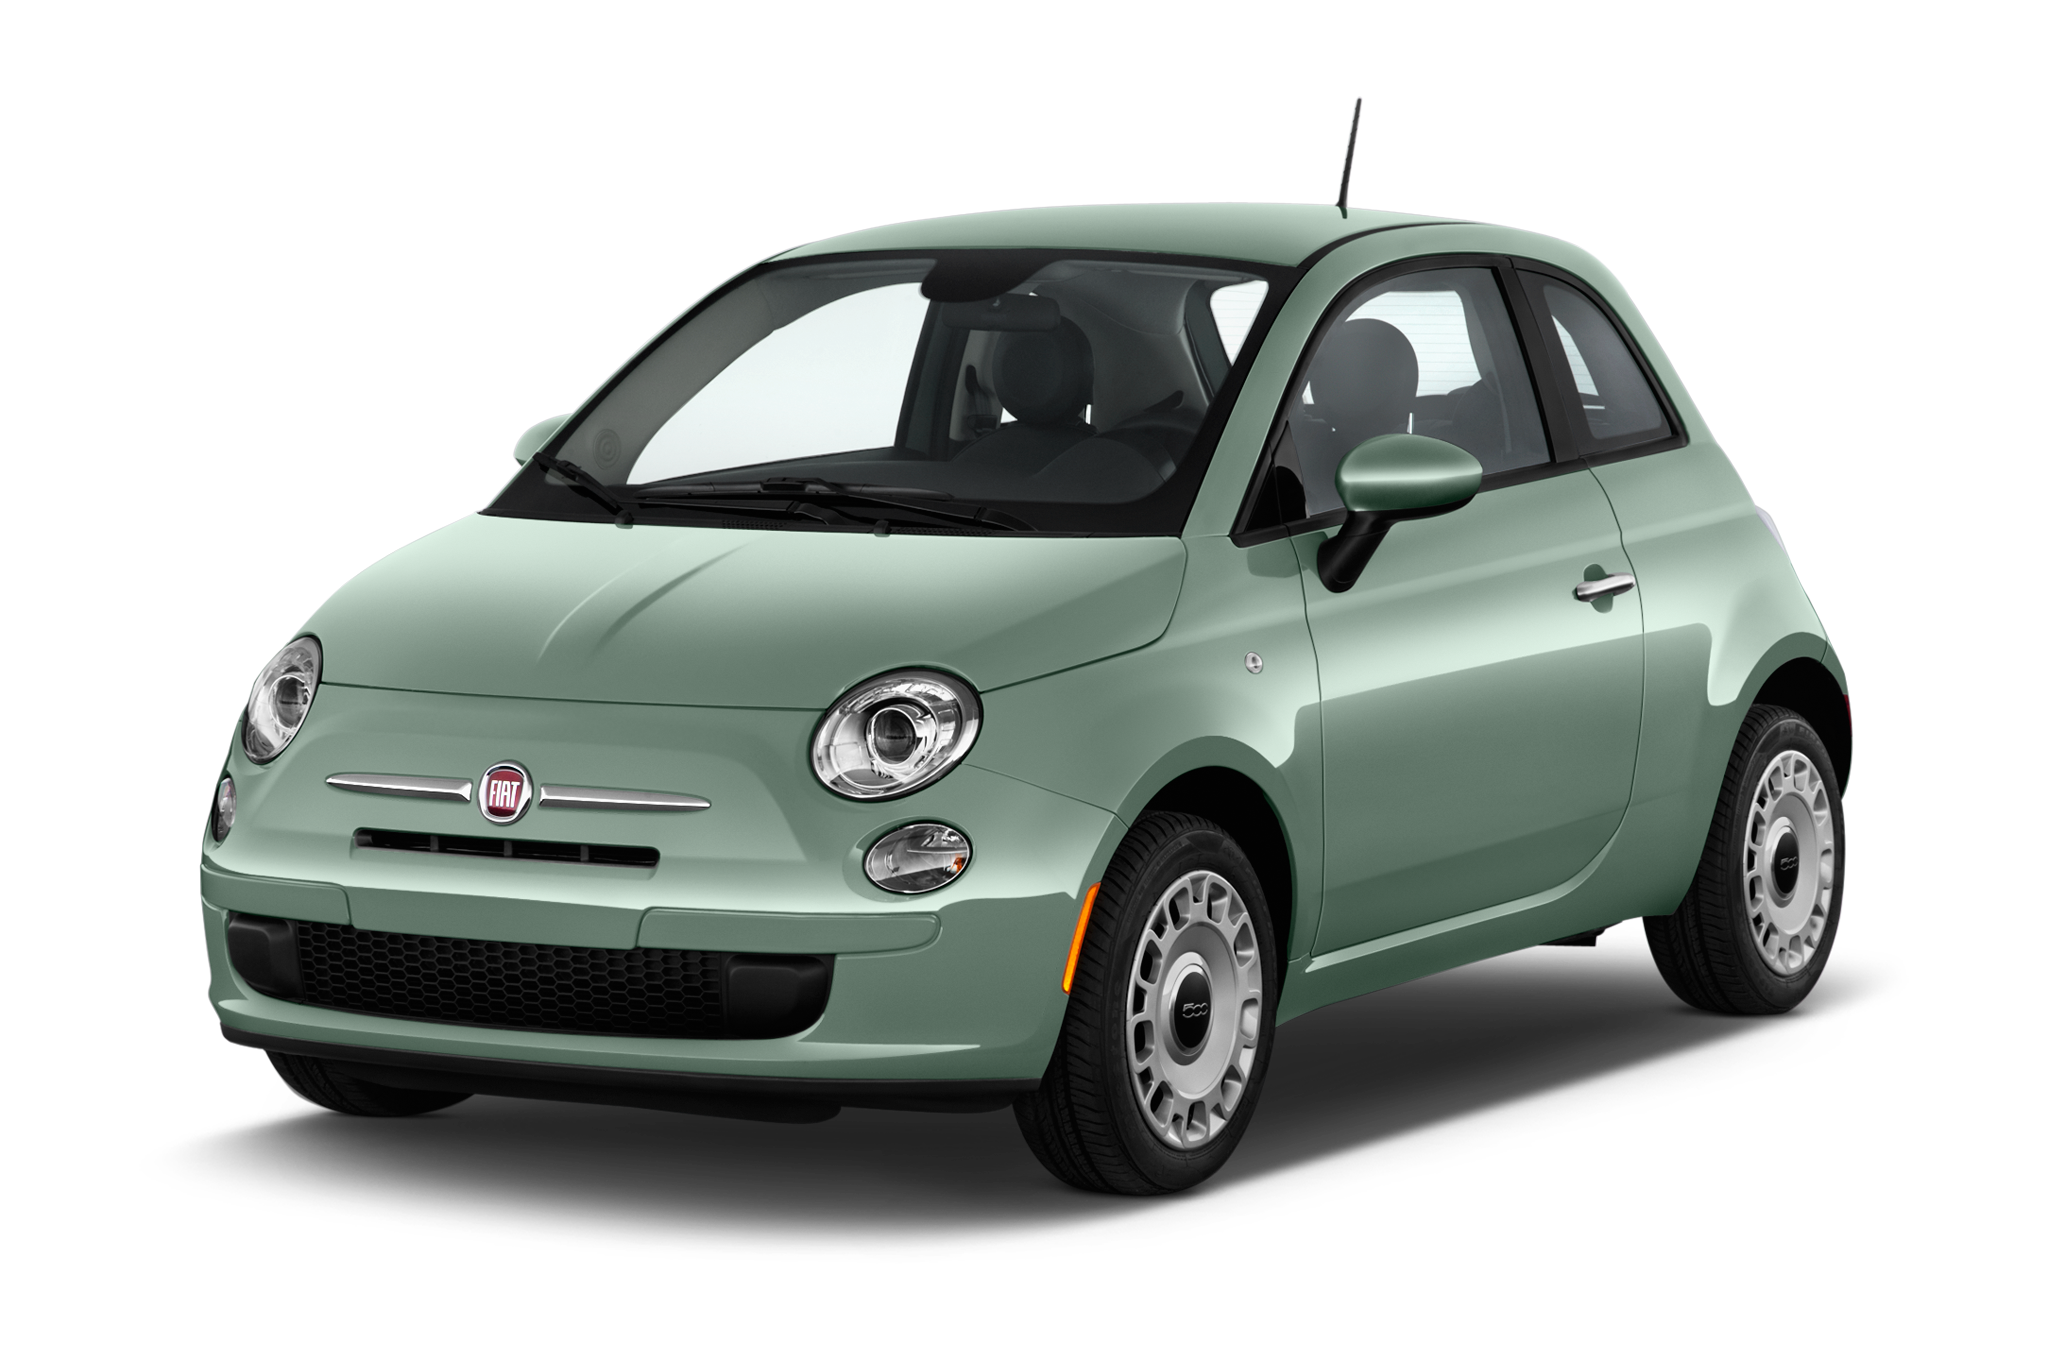 Moma Adds A 1968 Fiat 500 To Its Permanent Collection Automobile Pop Diagram 21 95